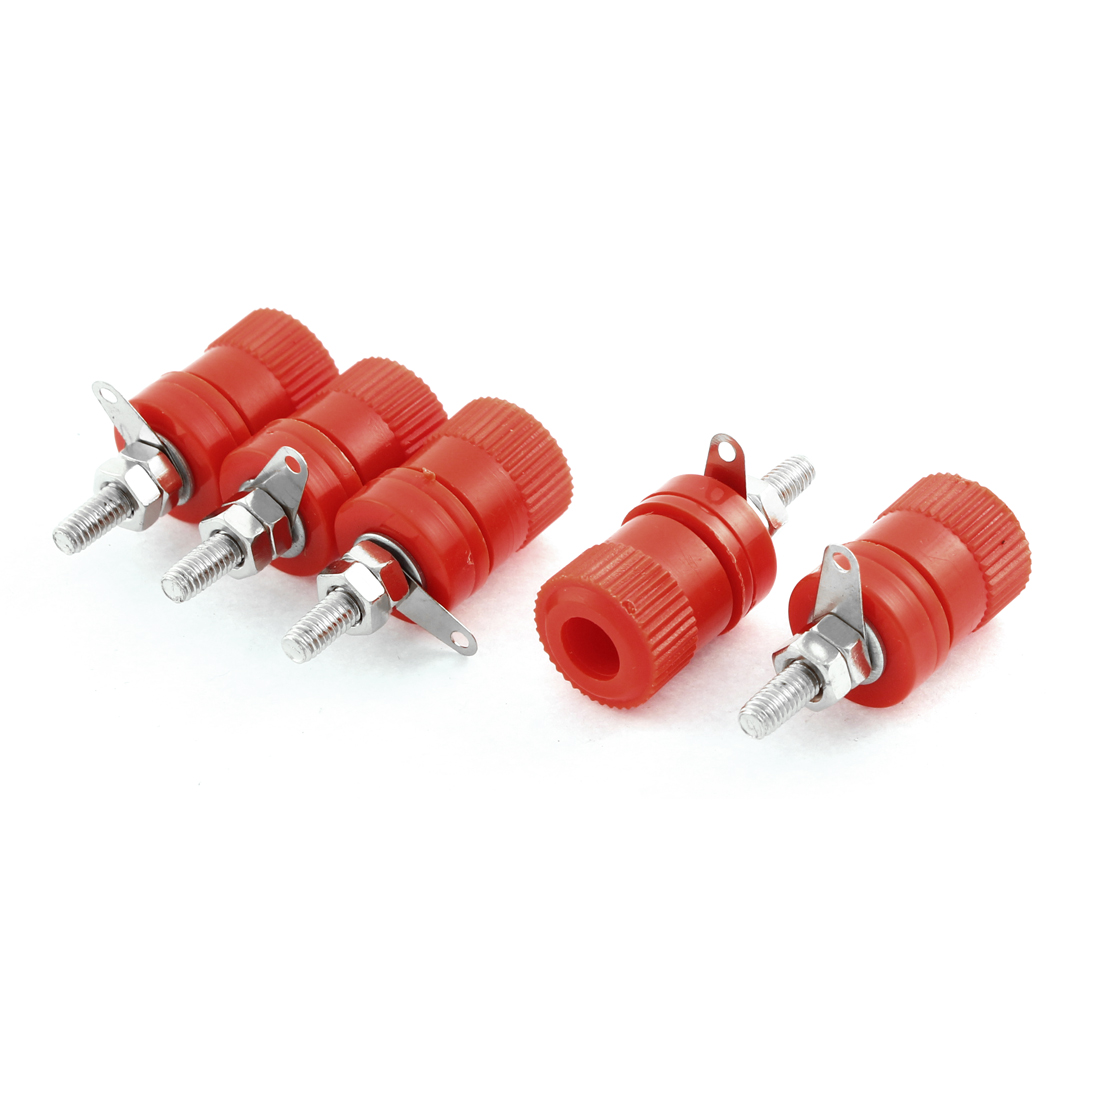 5PCS Panel Mount Amplifier Binding Posts 4mm Banana Socket Connector Red